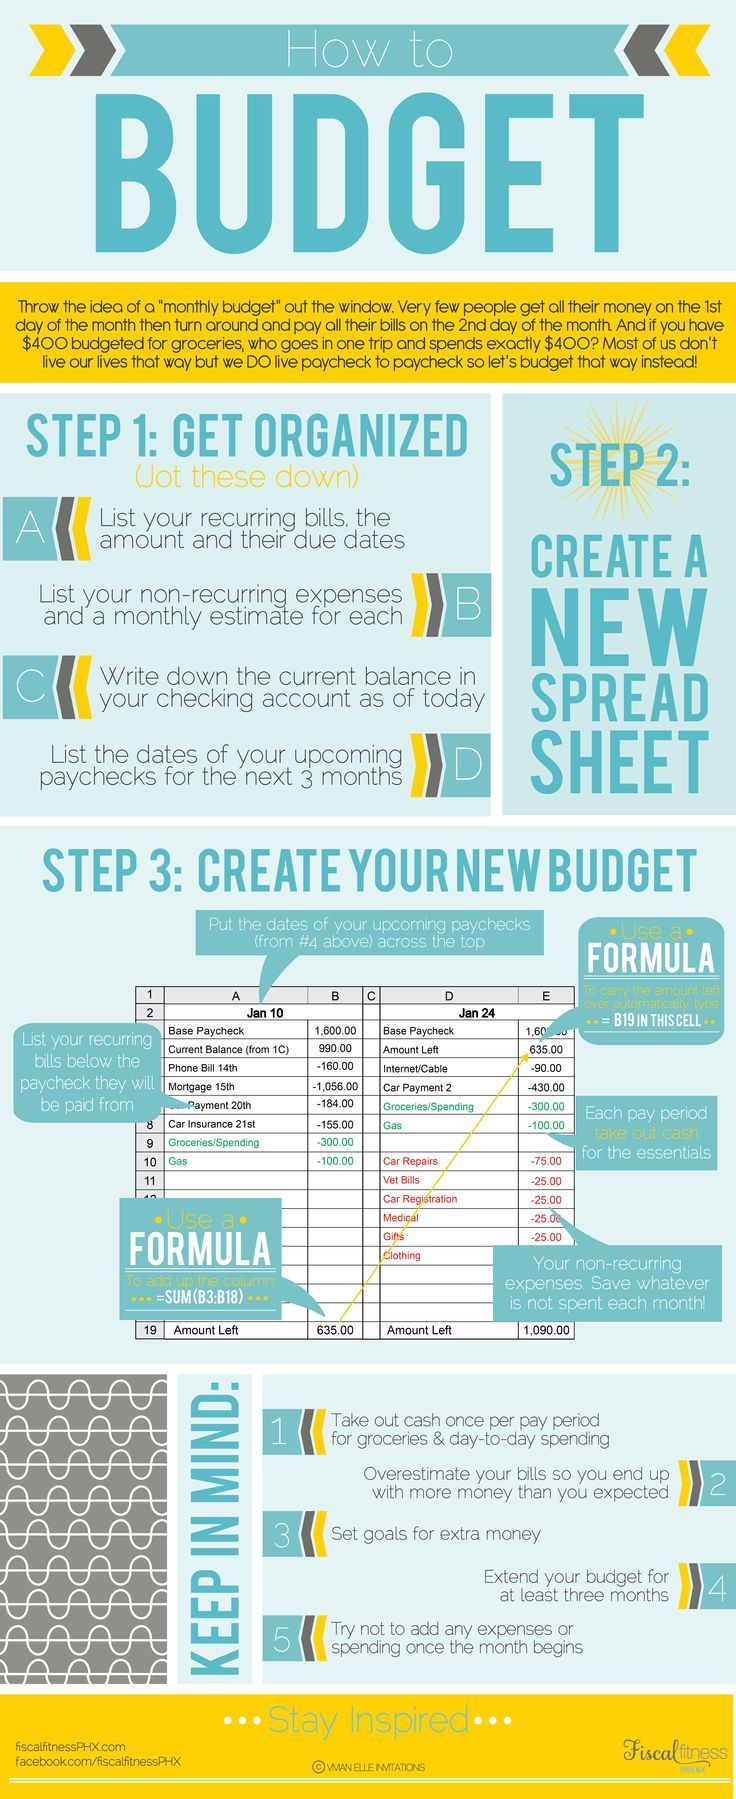 Budget Tips Best 25+ Budget Calculator Ideas On Pinterest | Monthly